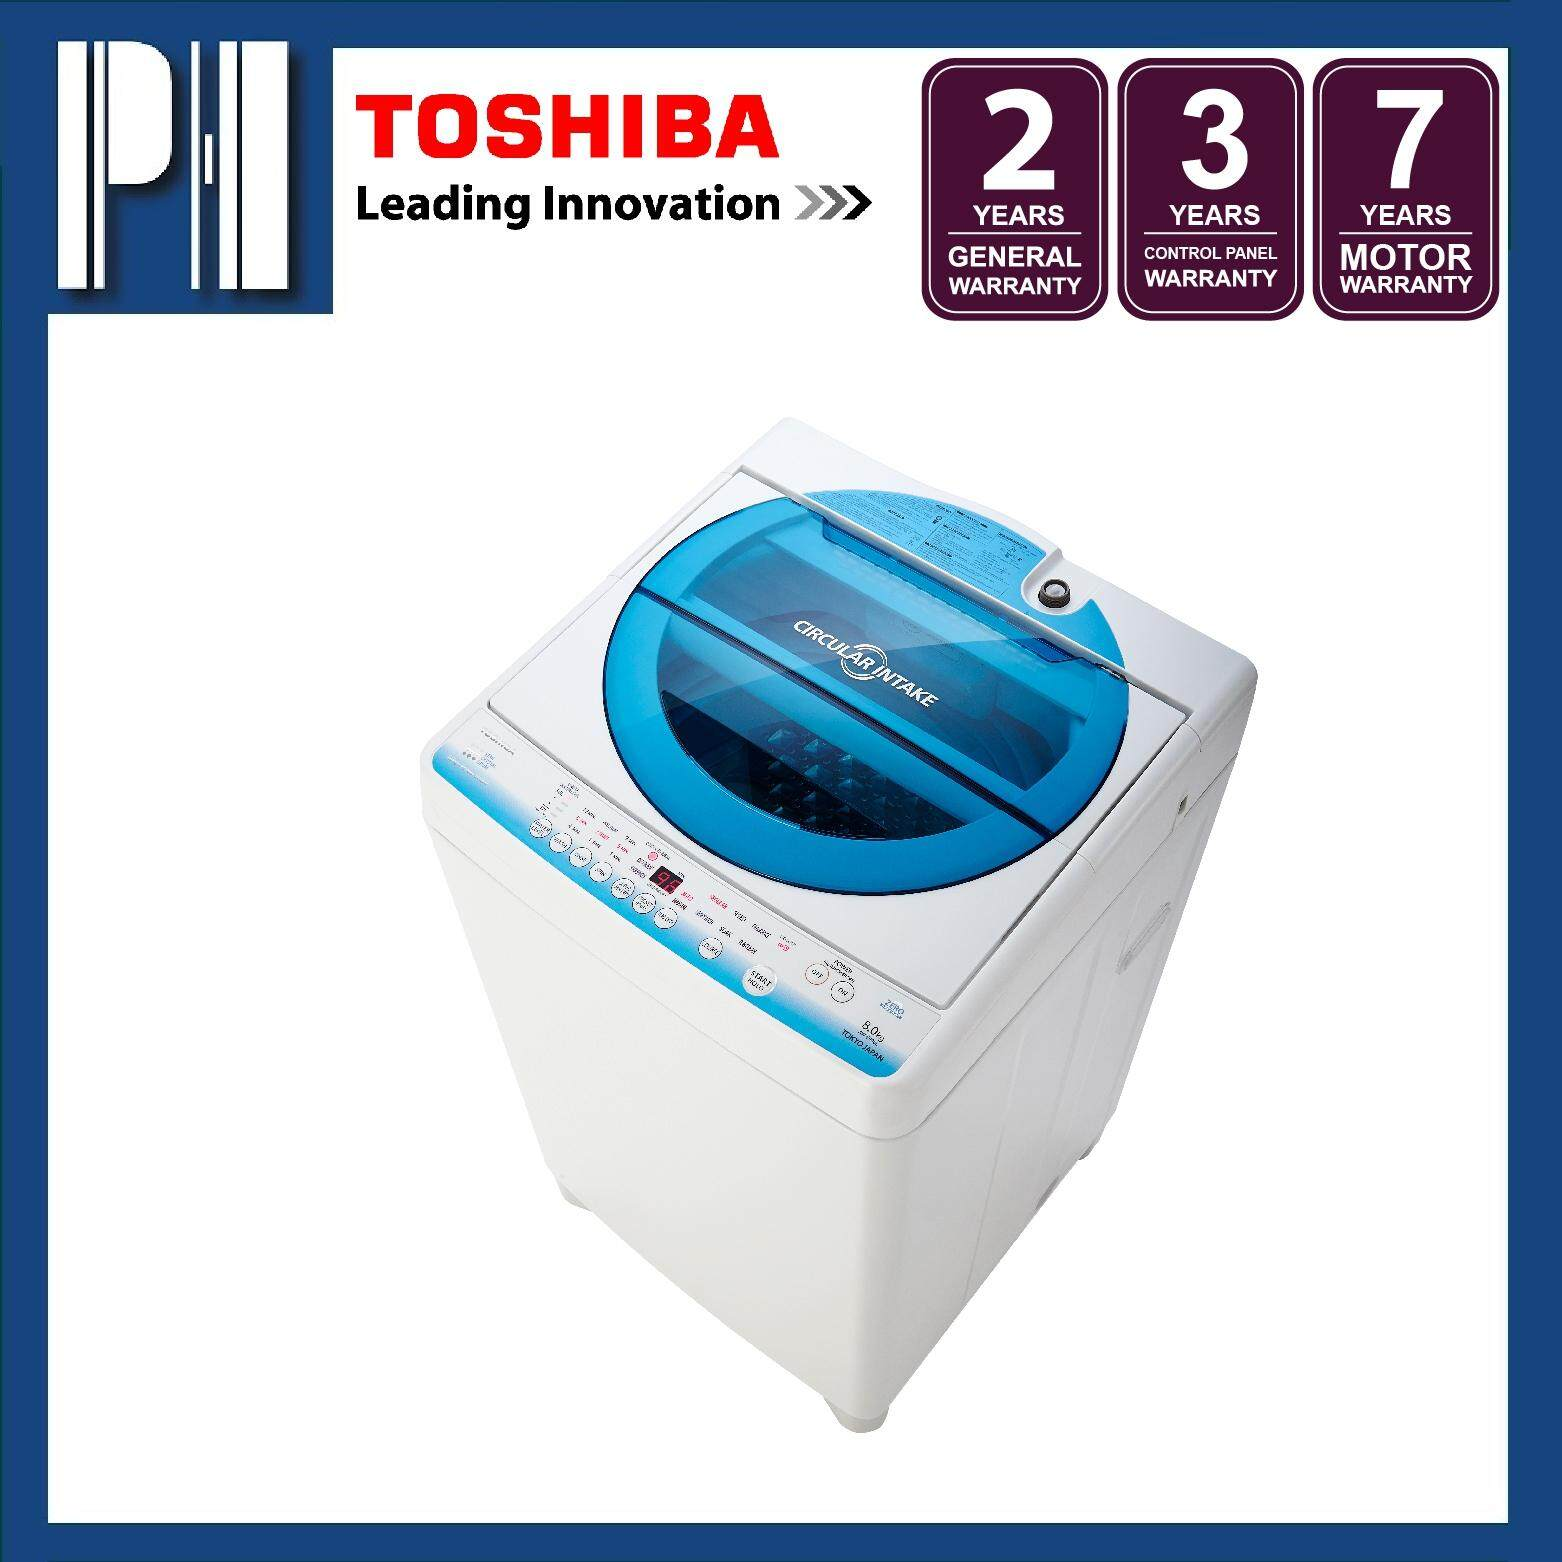 TOSHIBA AW-E900LM(WB) 8.0KG Fully Auto Washing Machine/Washer